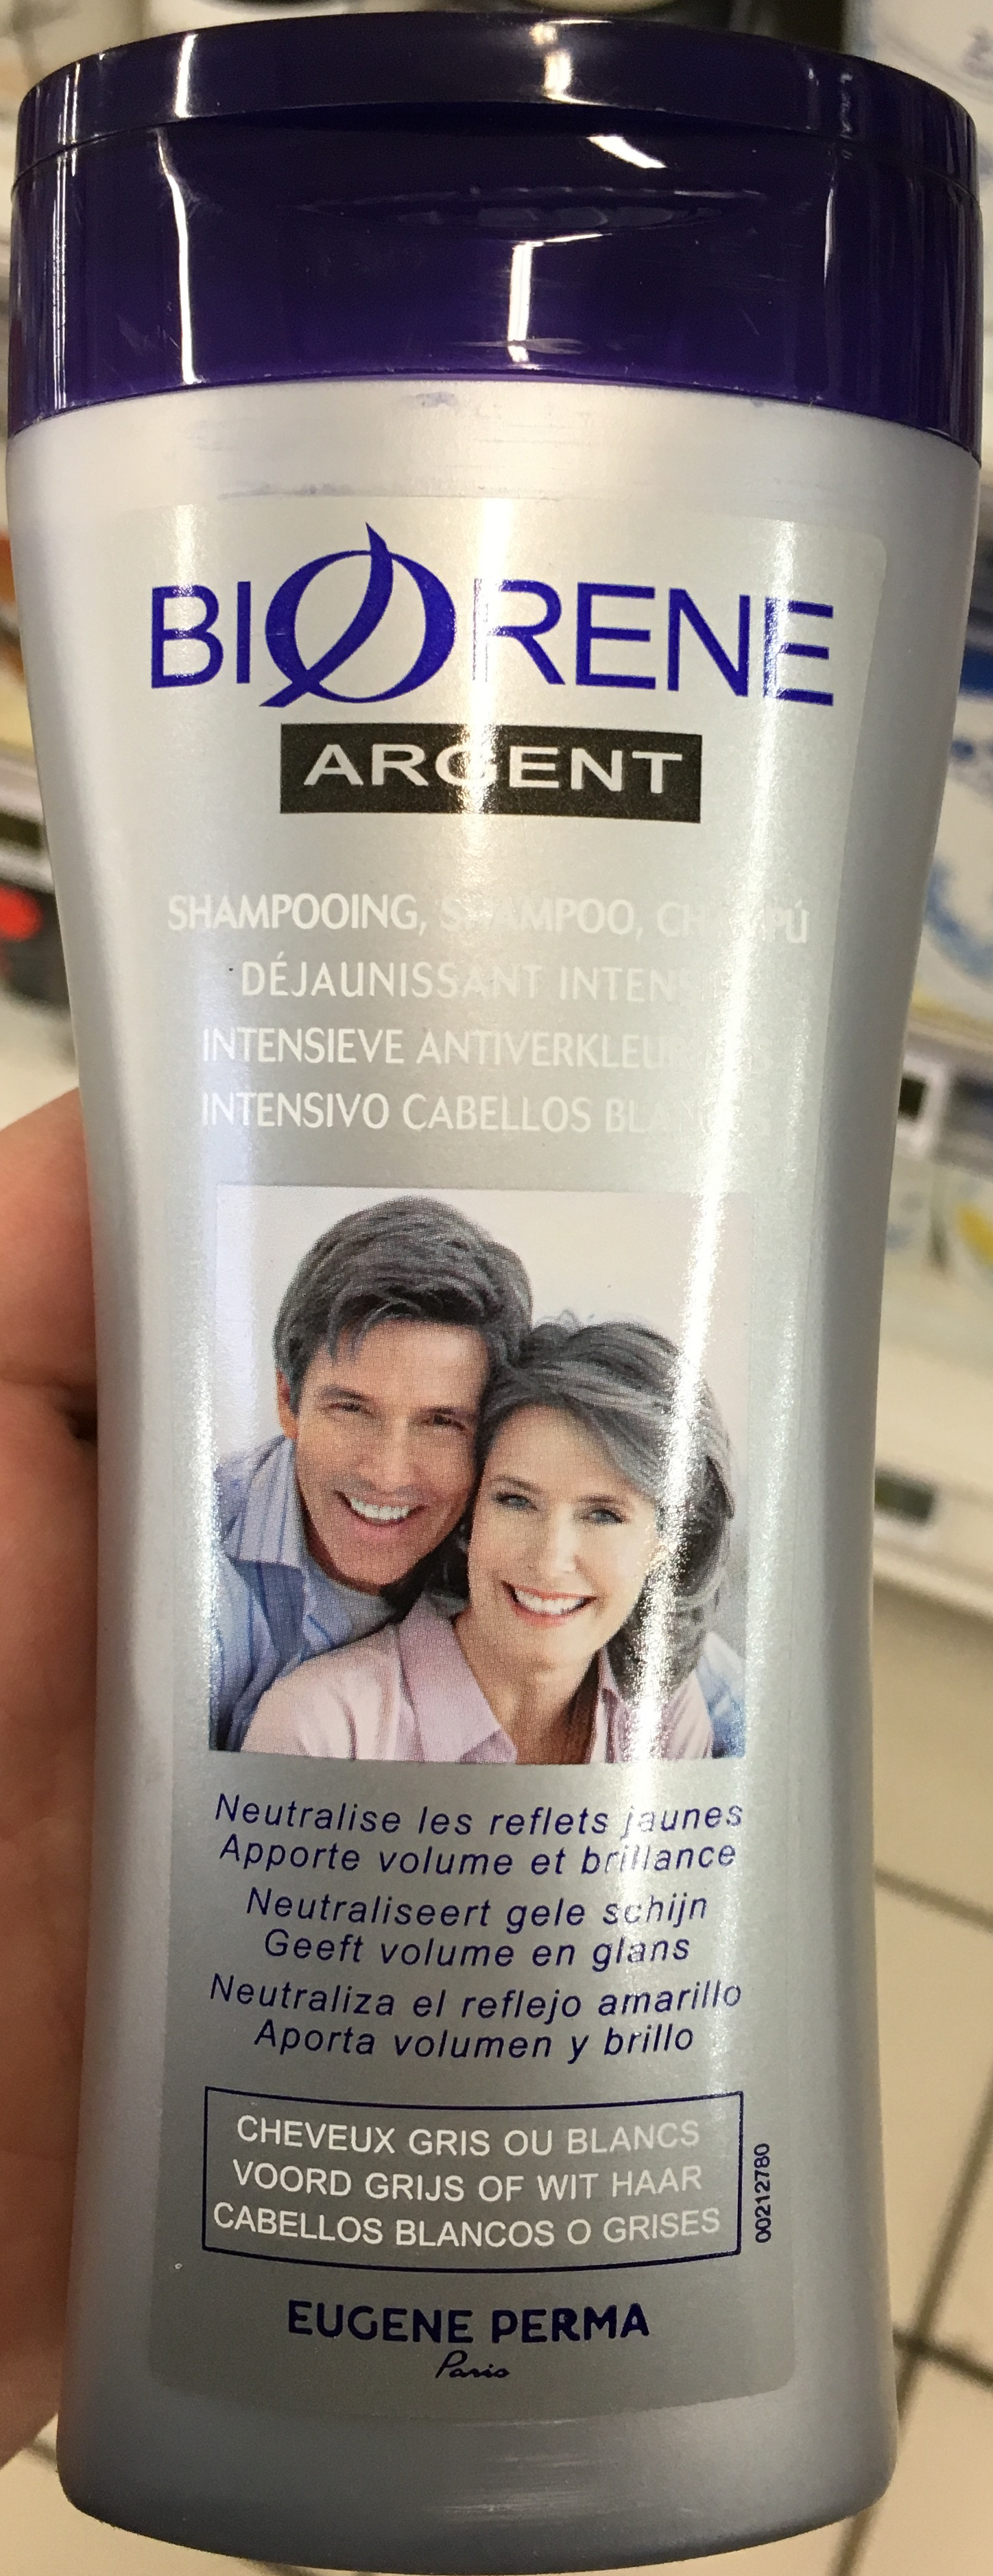 Biorene Argent Shampooing déjaunissant intensif - Product - fr